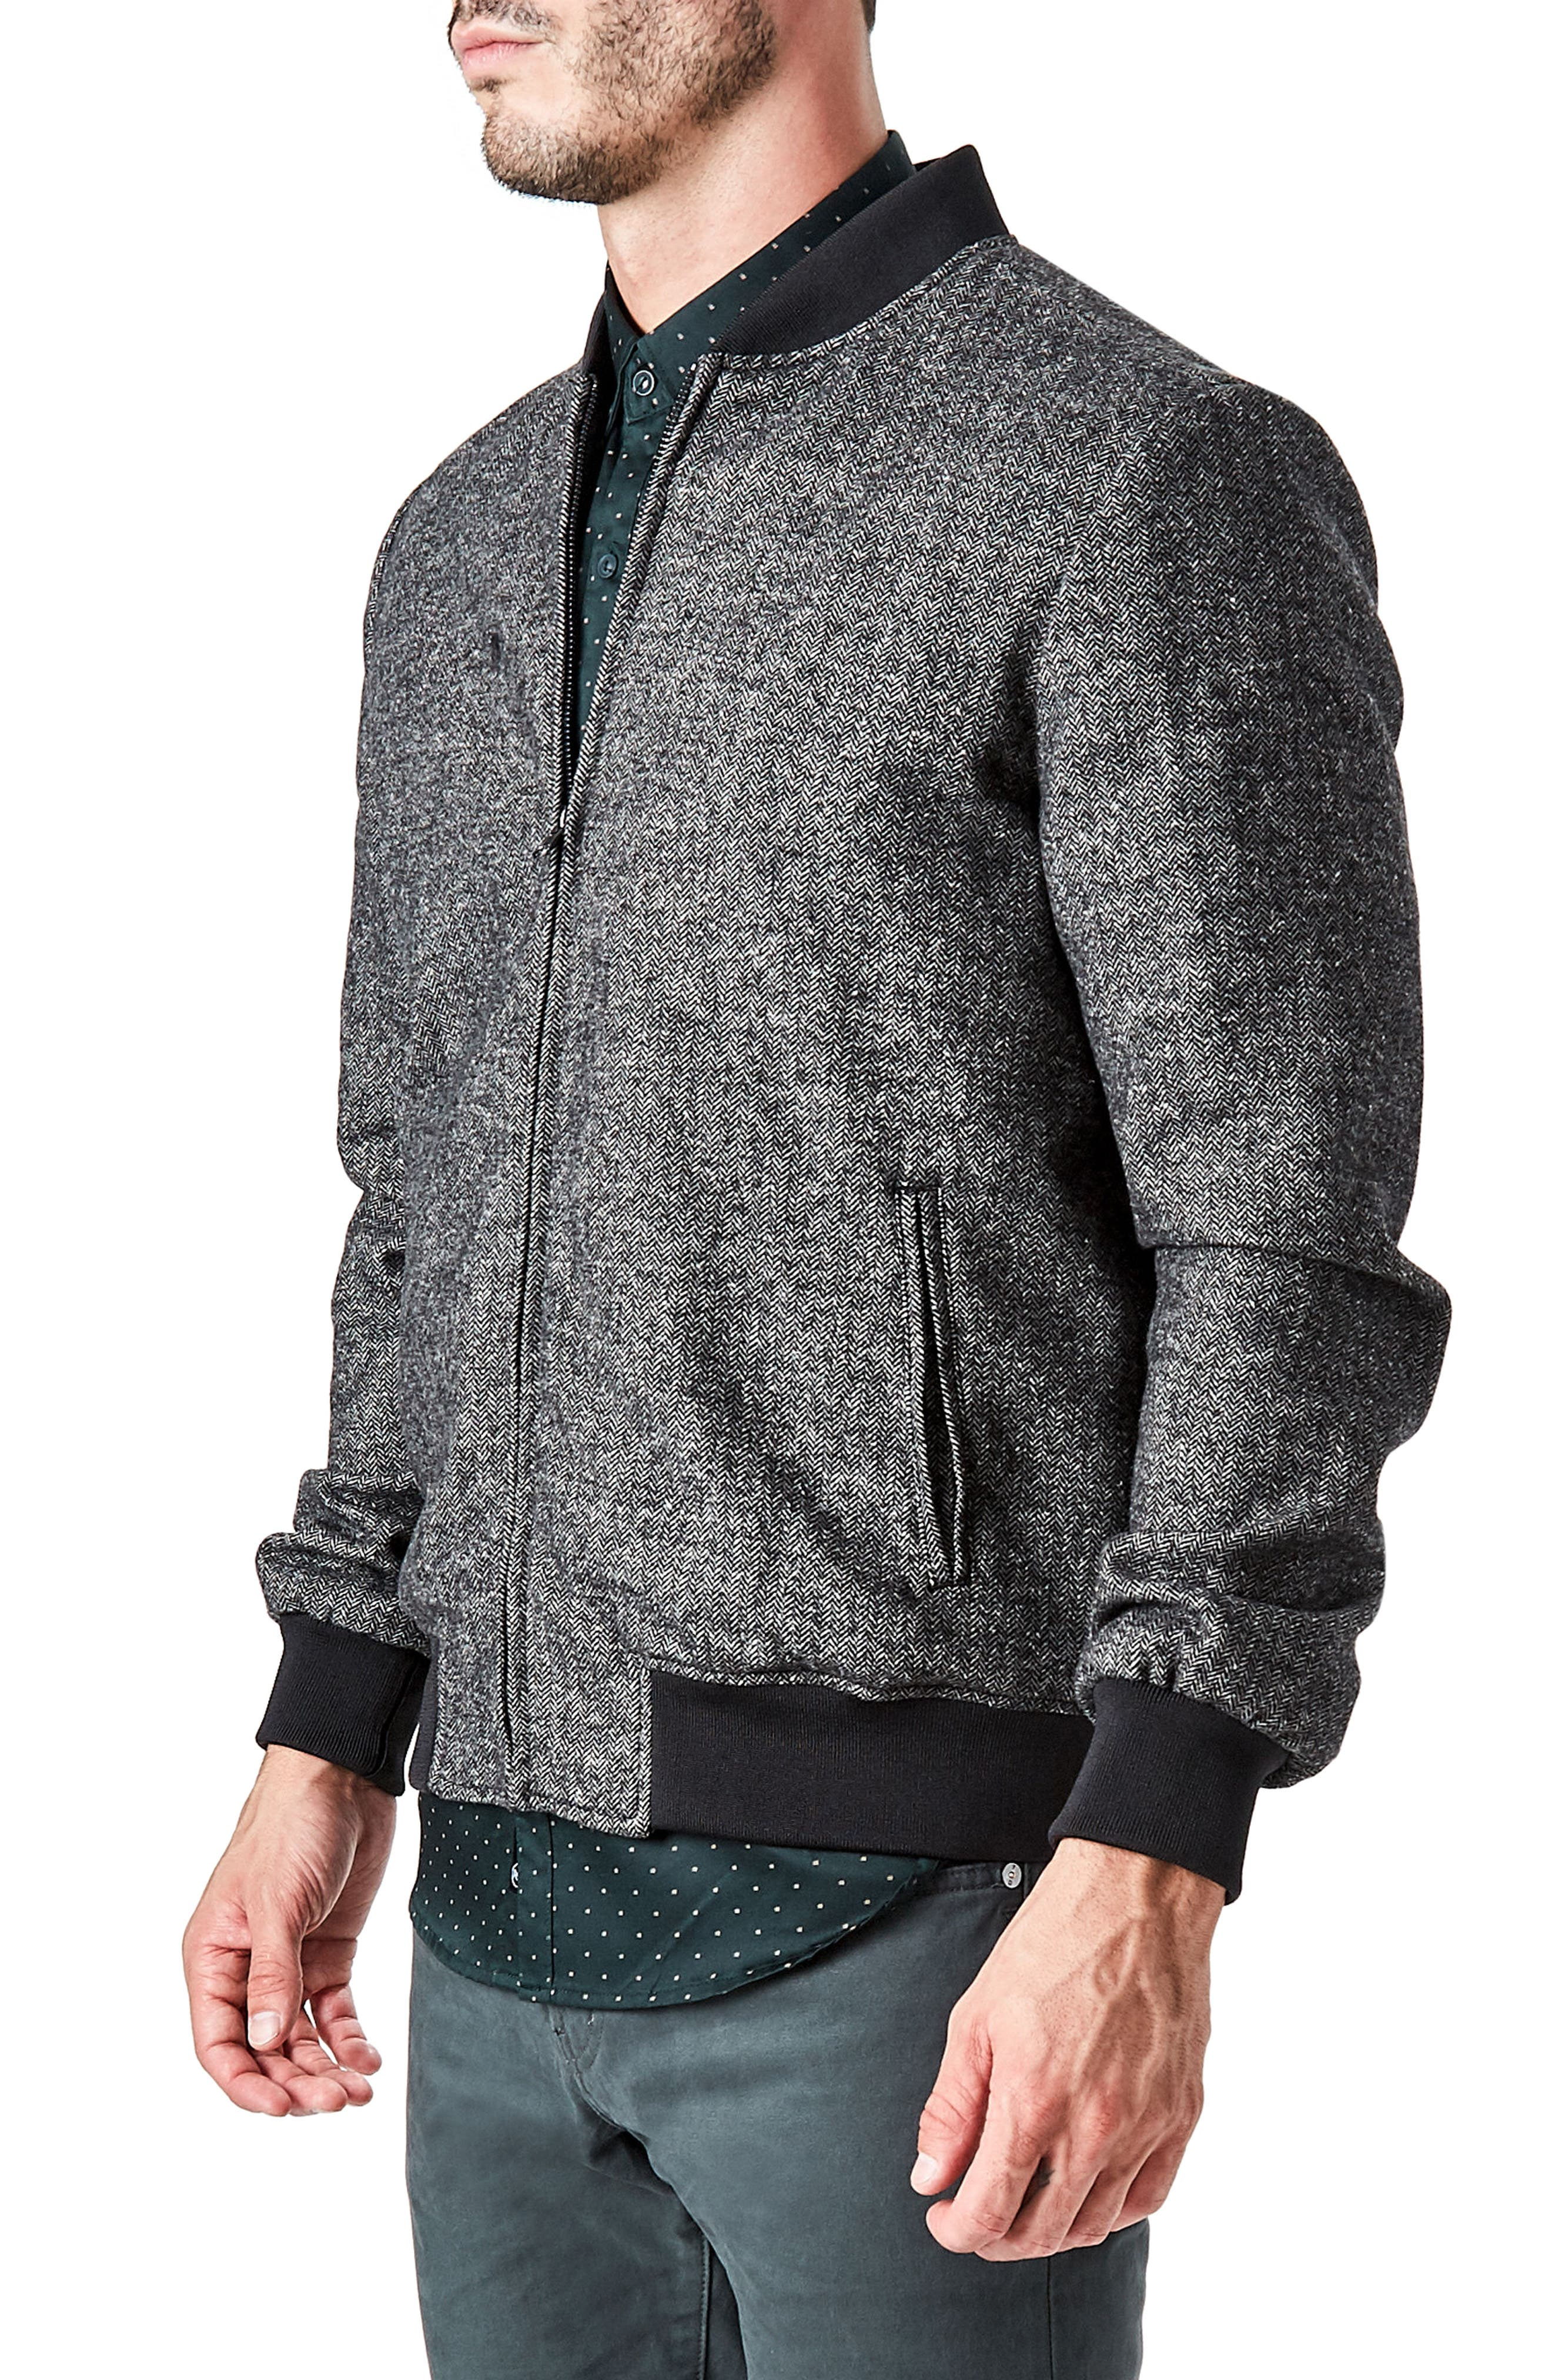 Aether Bomber Jacket,                             Alternate thumbnail 7, color,